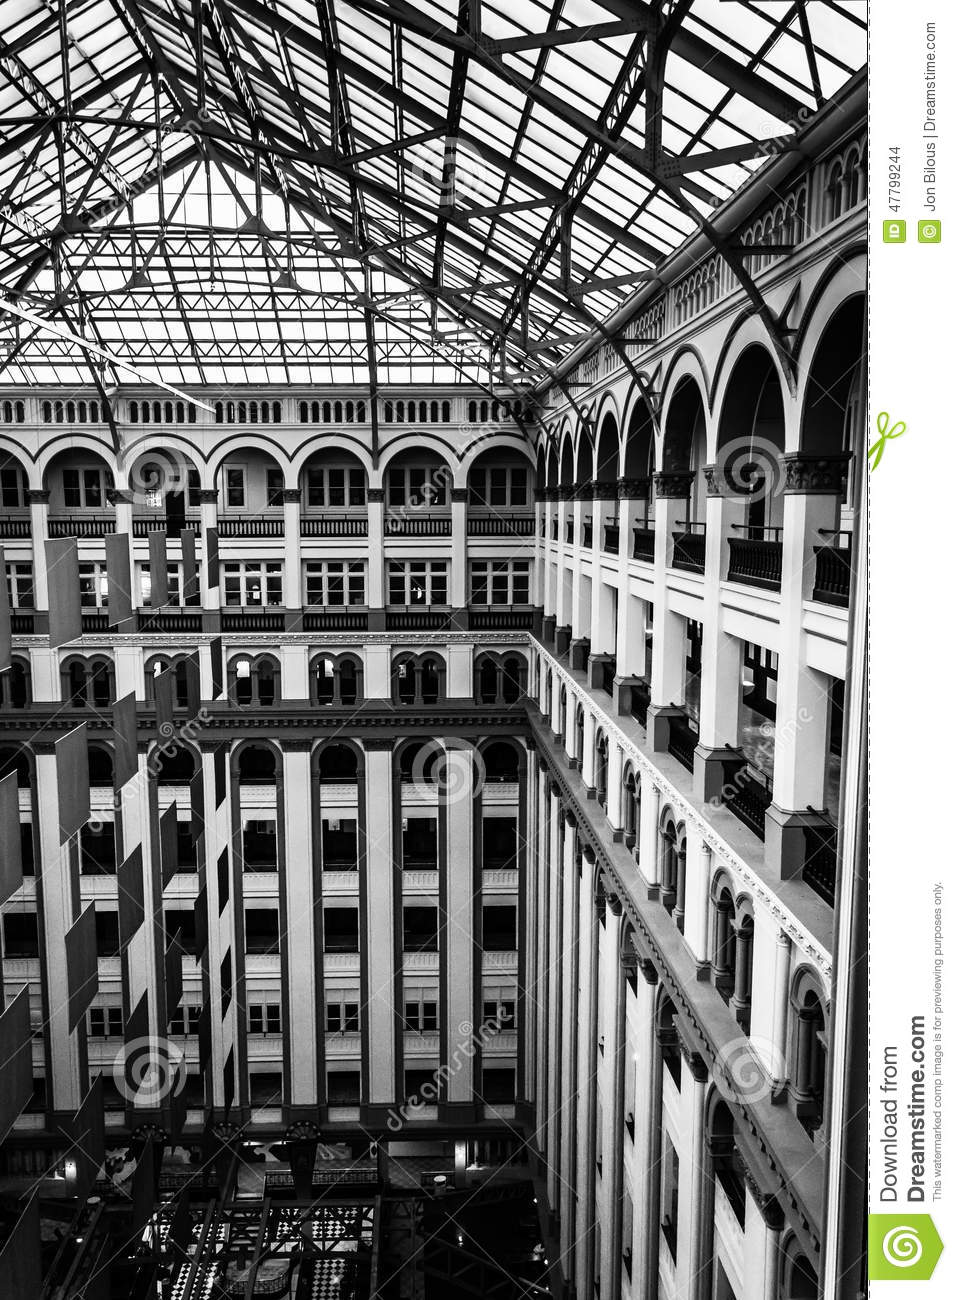 Interior architecture at the old post office in washington dc editorial stock image image for Department of interior jobs washington dc